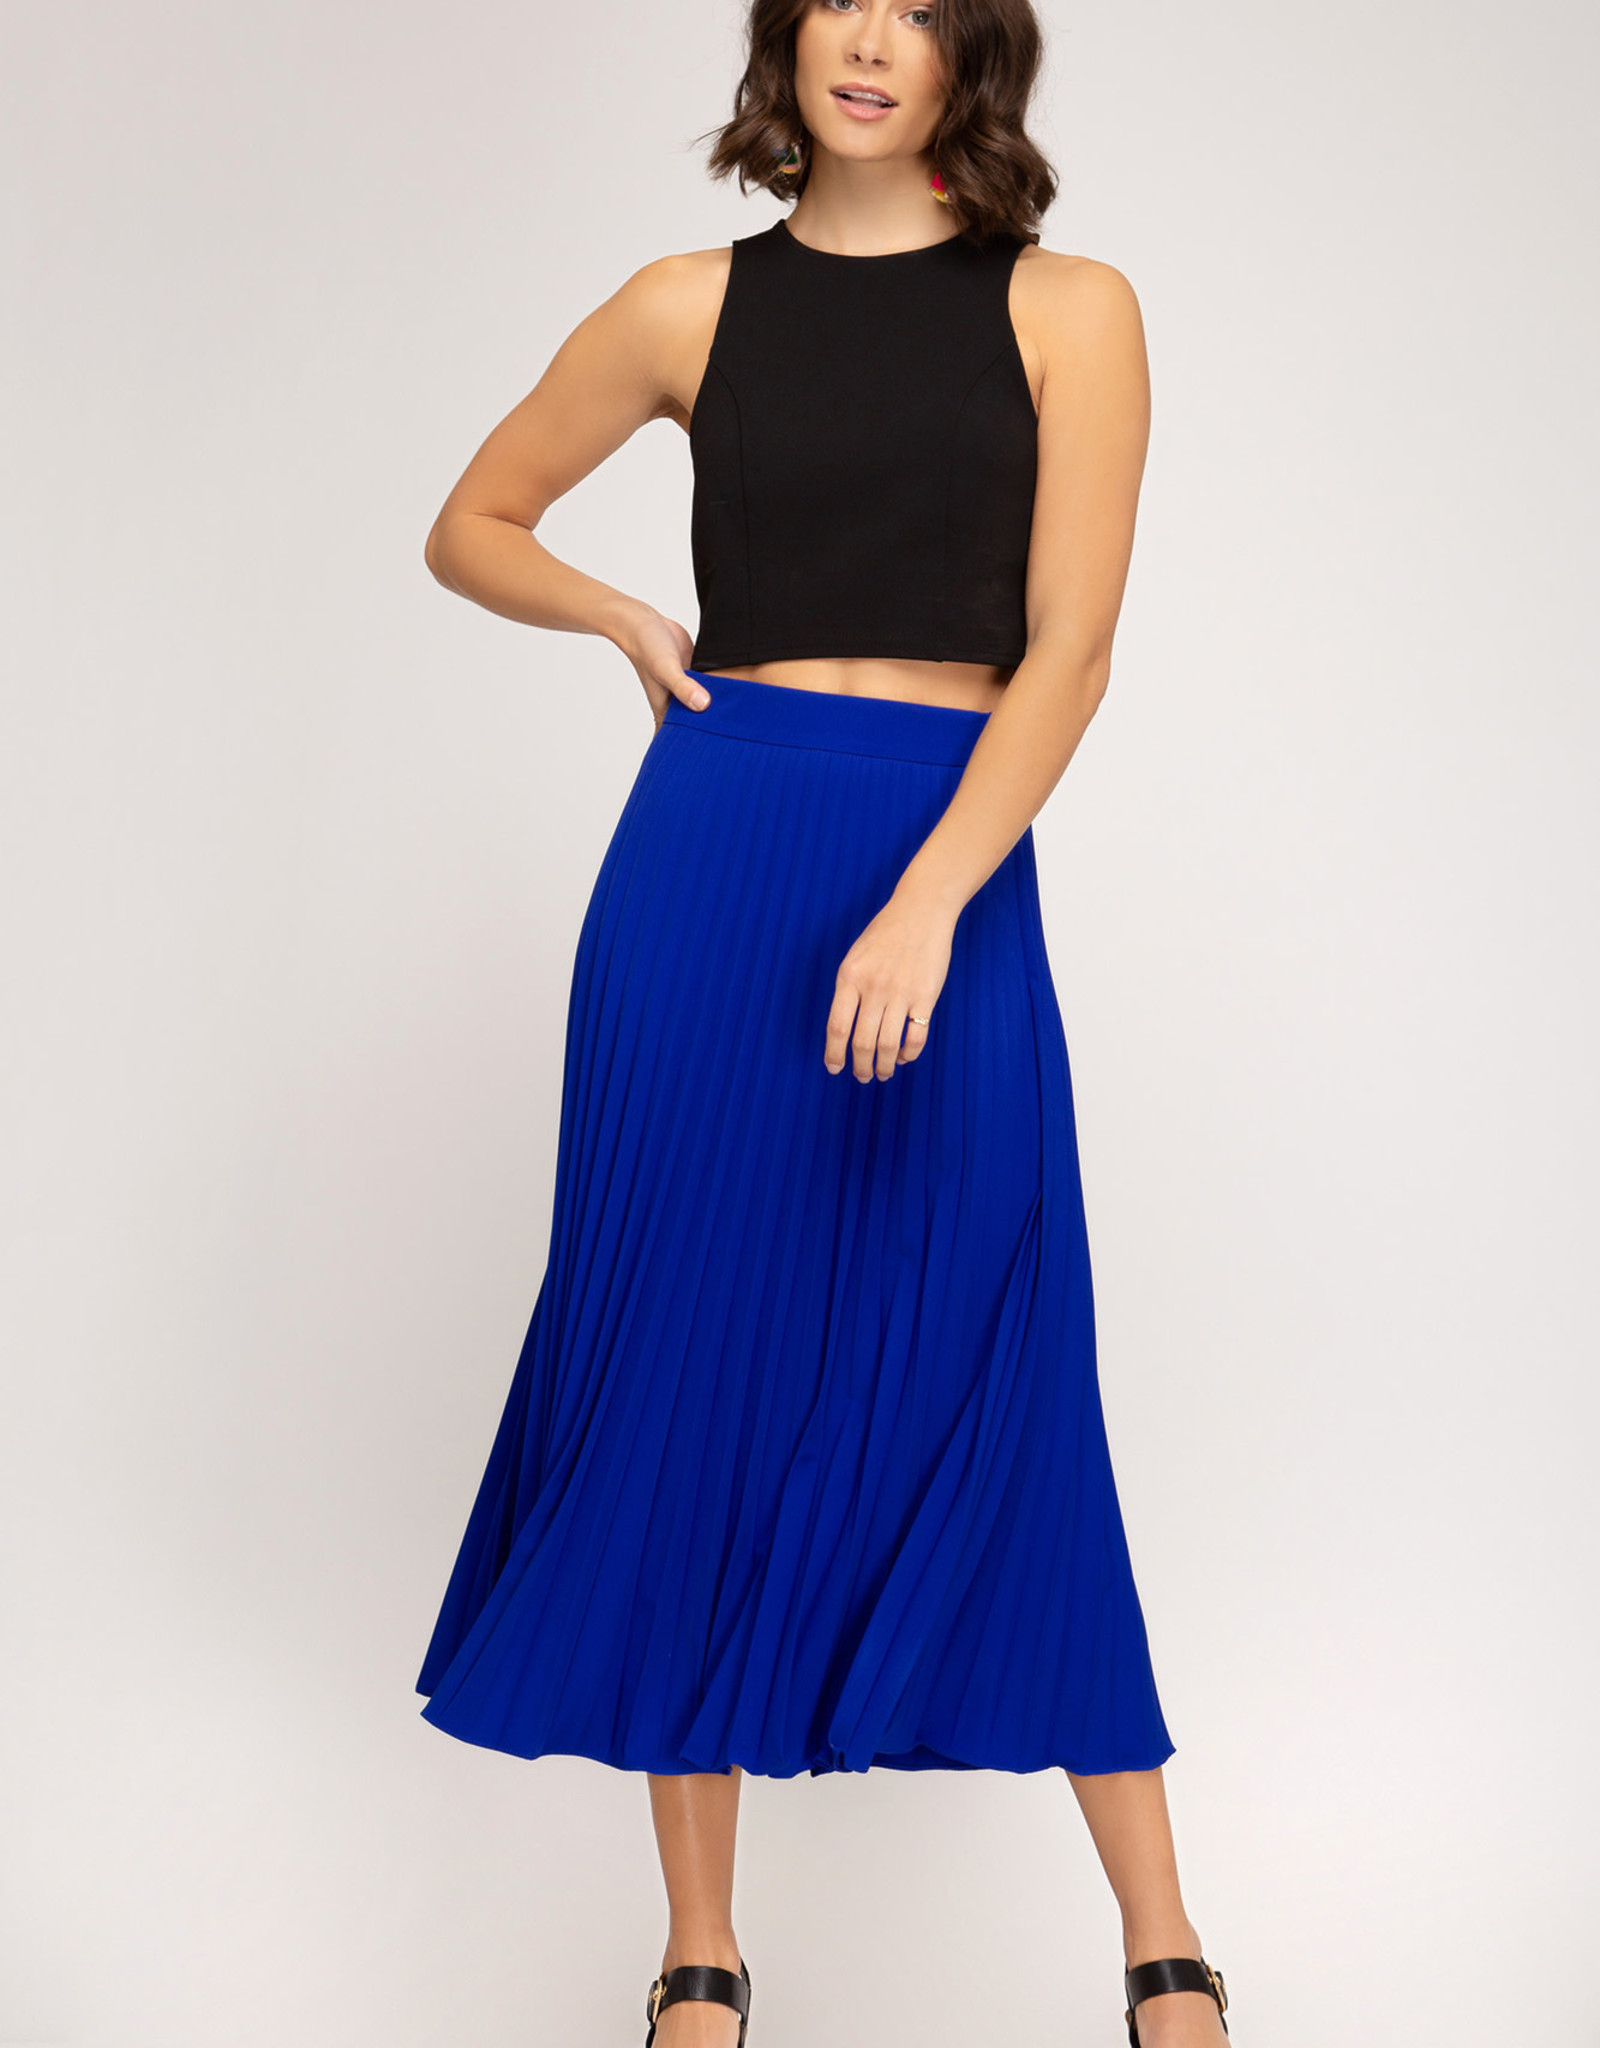 LeBLANC finds PLEATED skirt, Royal or Black